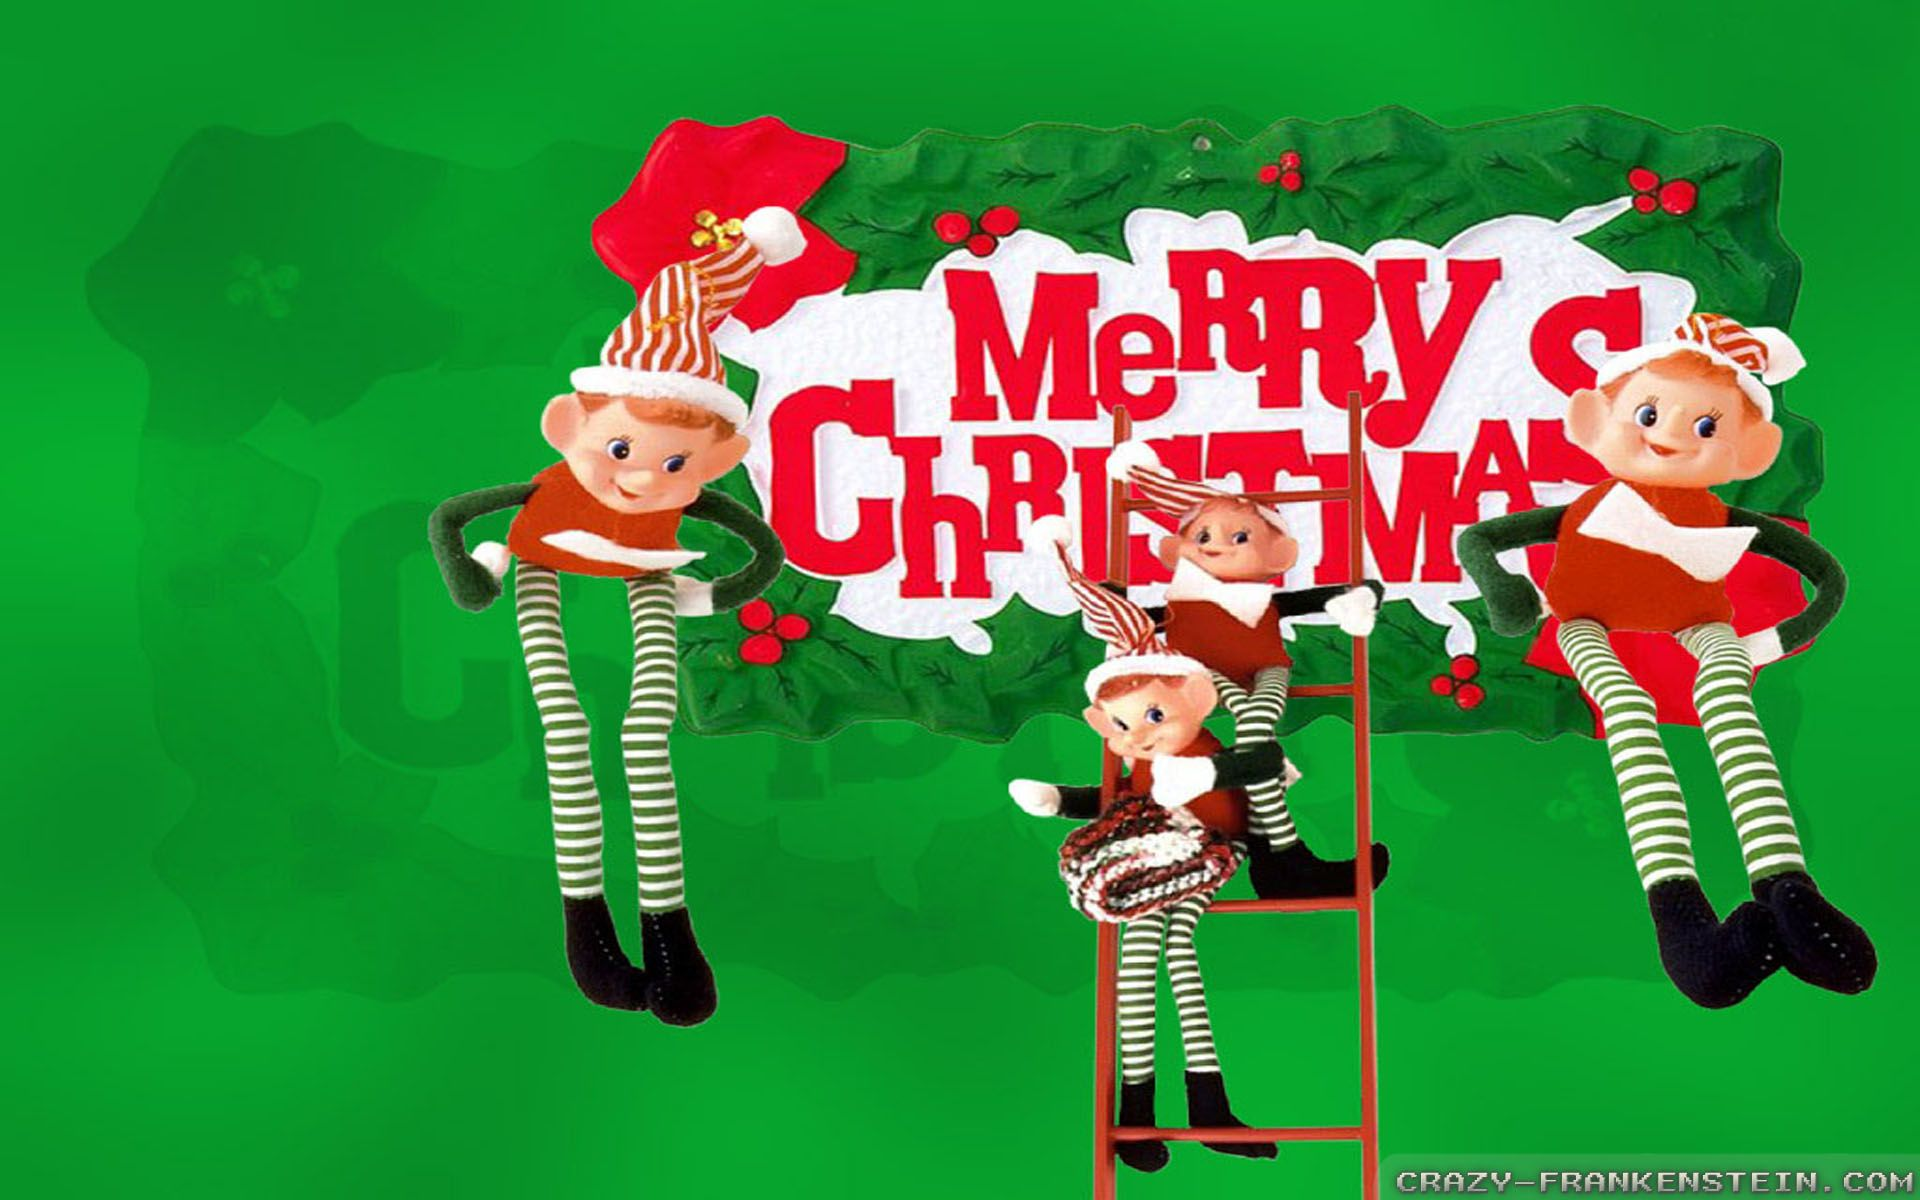 Christmas Elves Wallpapers   Top Christmas Elves Backgrounds 1920x1200